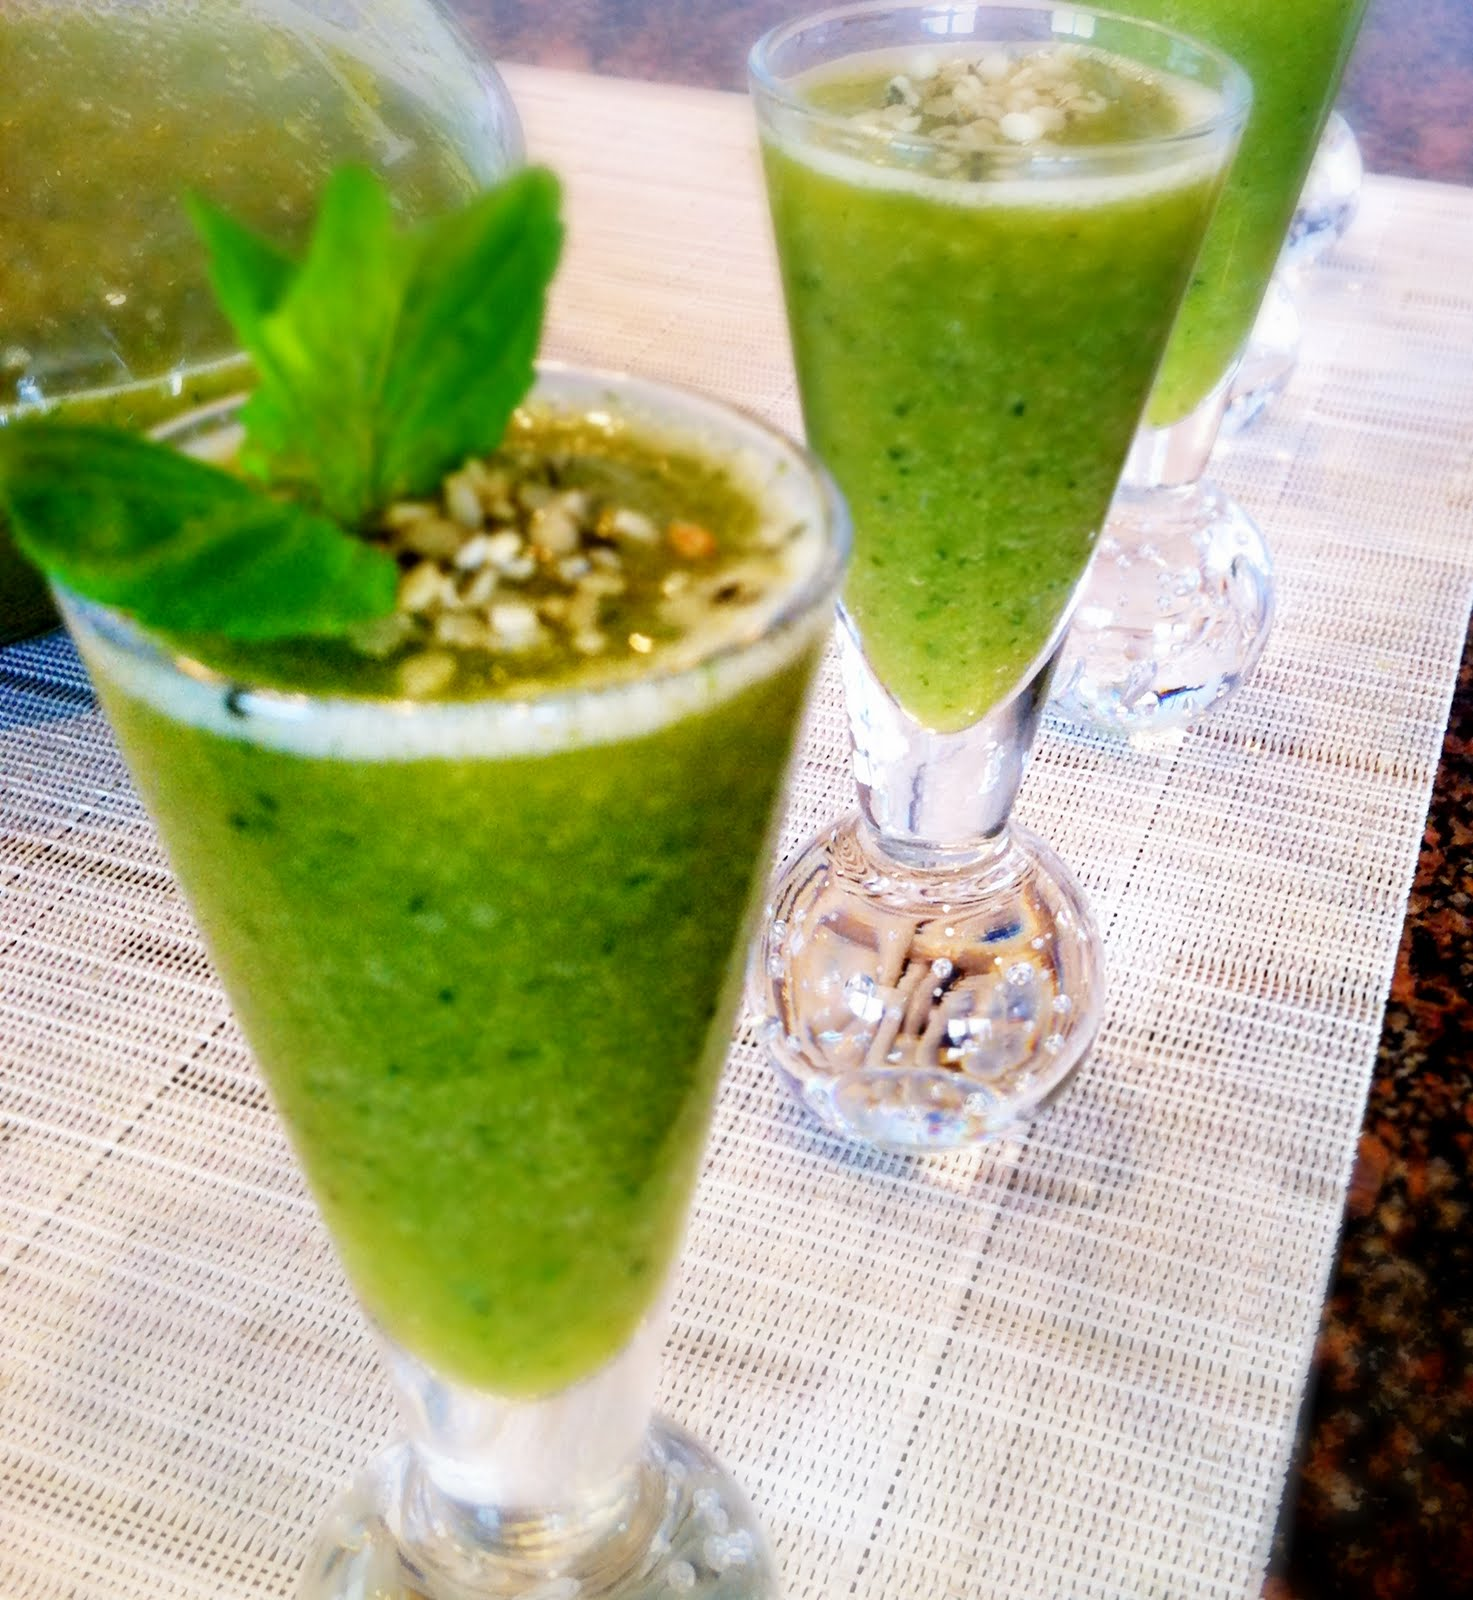 Green Apple Baby: Detox Smoothie #1 and Lemon Rosemary Roasted ...